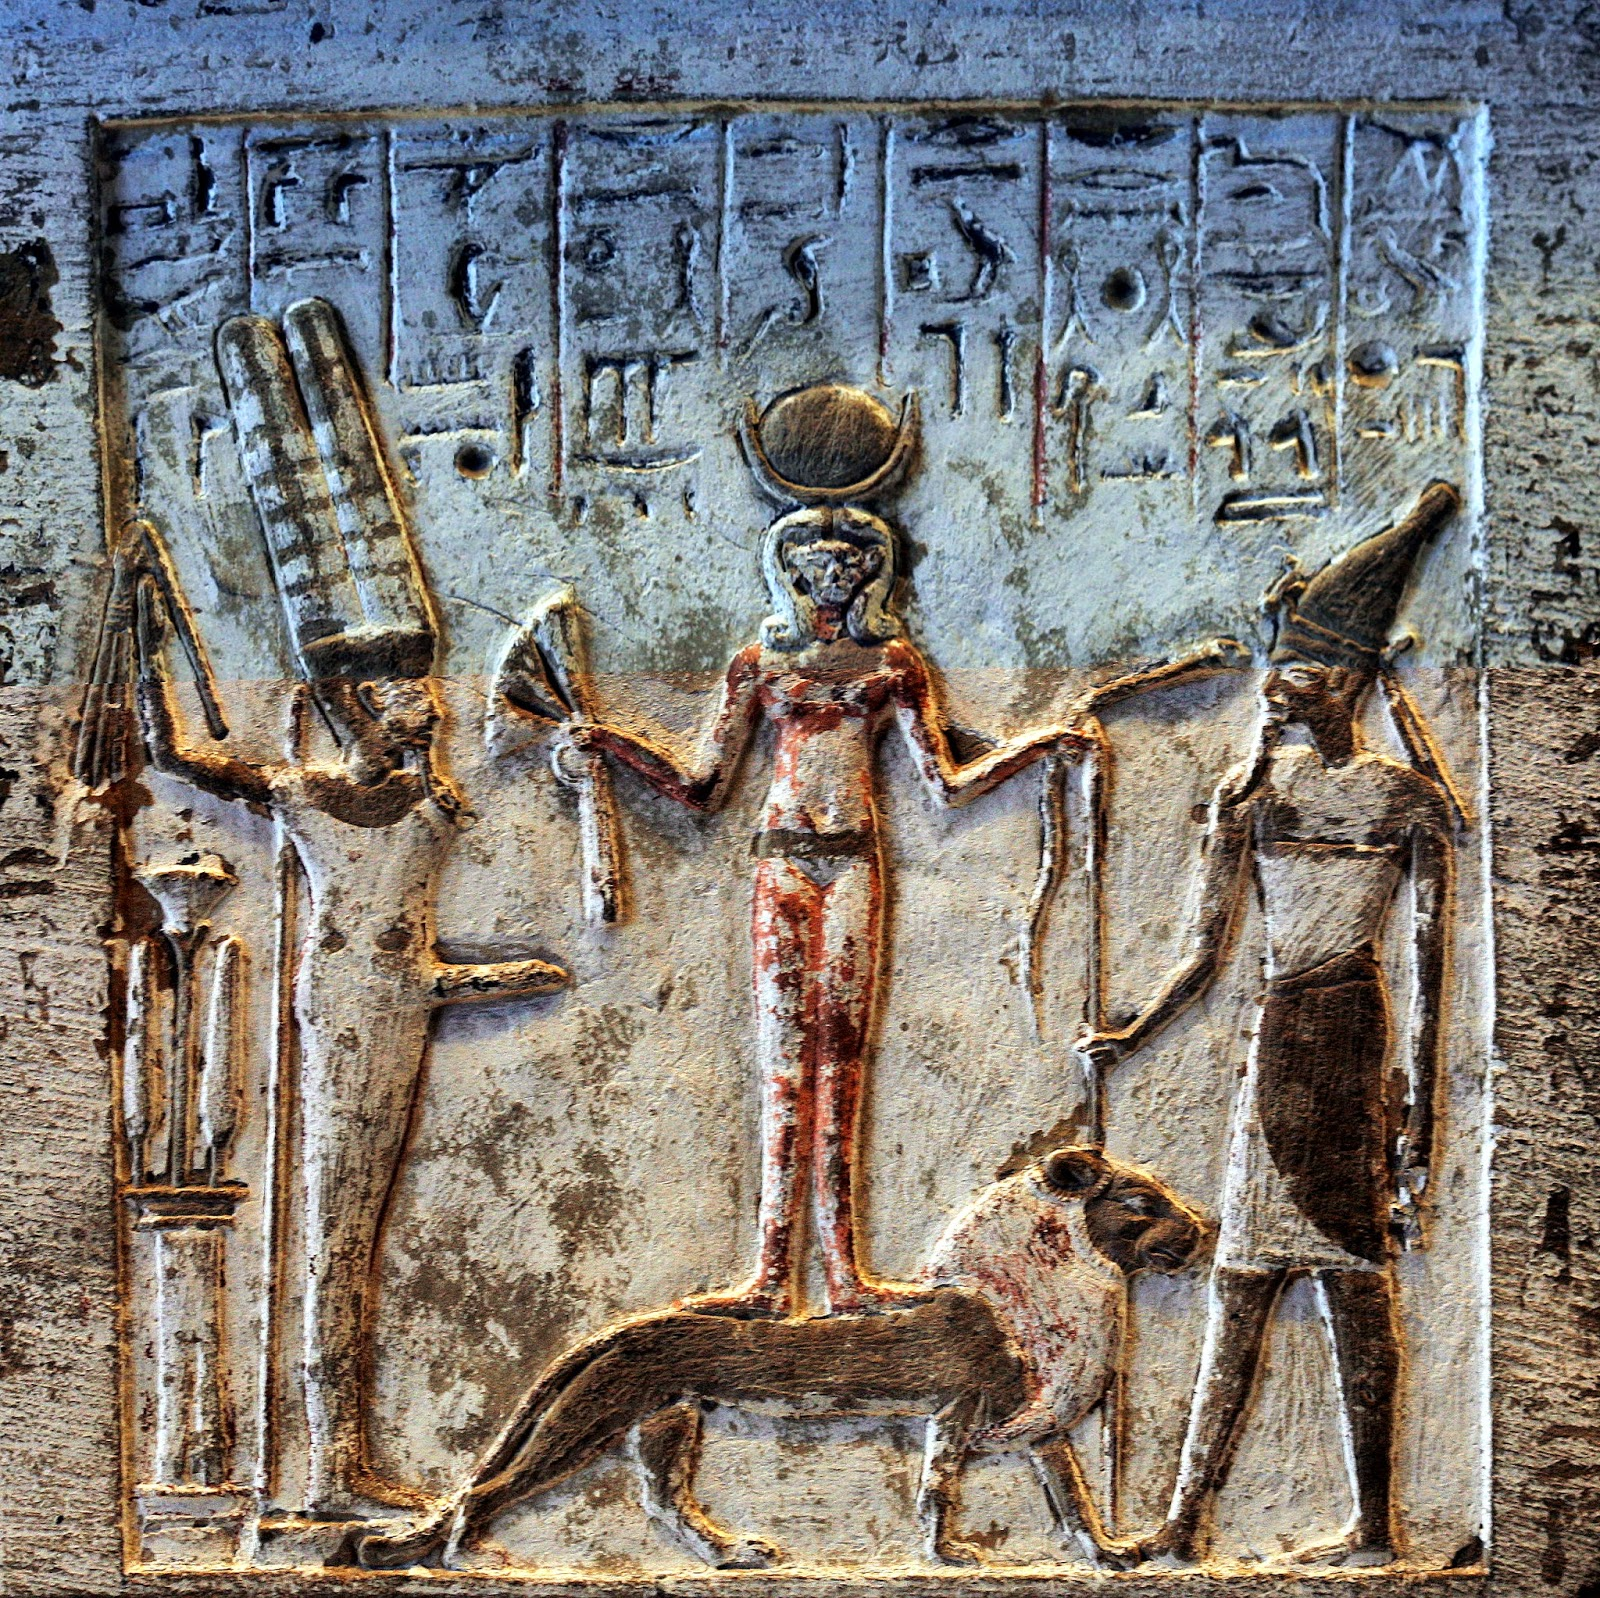 daily ancient cultures ancient israel asherah and the asherim goddess or cult symbol